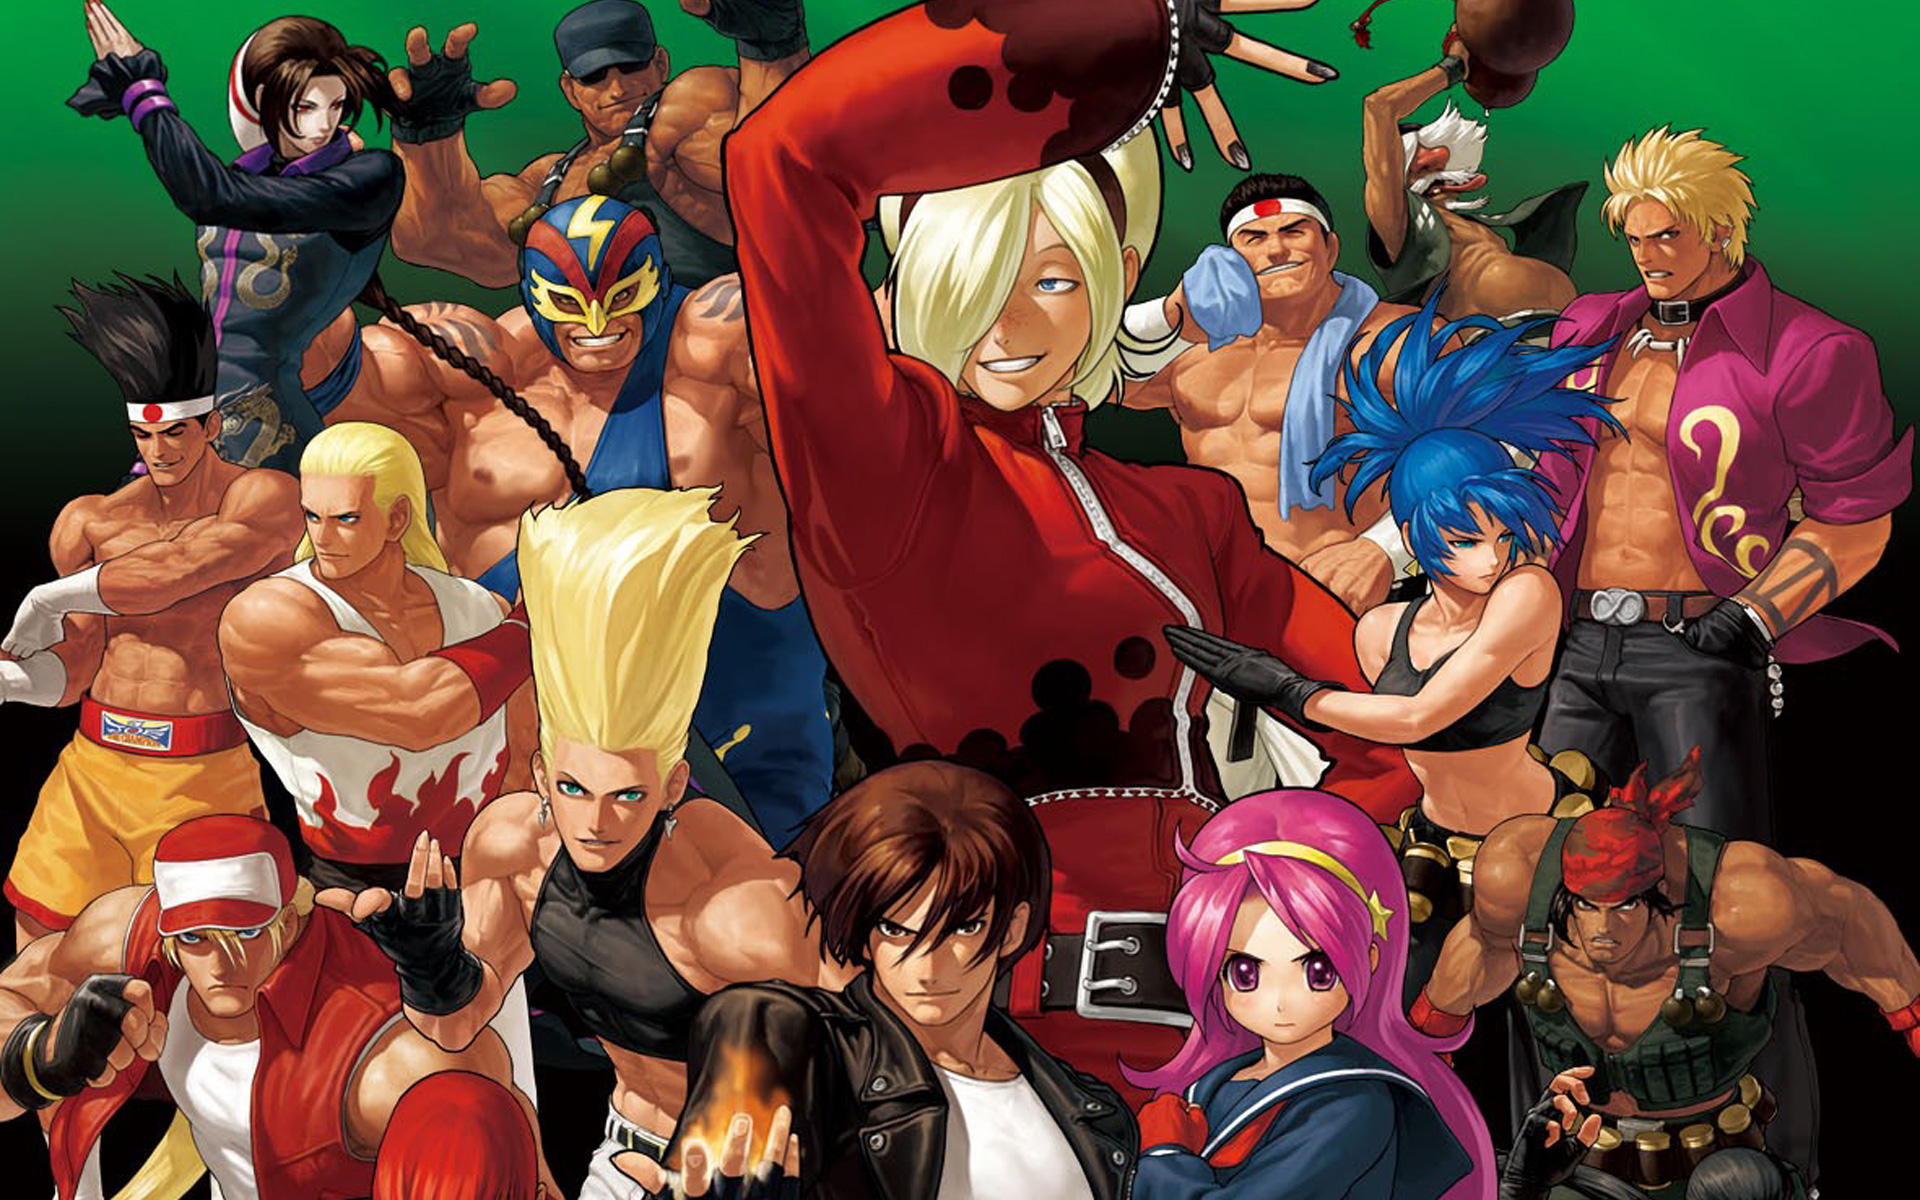 Free The King of Fighters XII Wallpaper in 1920x1200